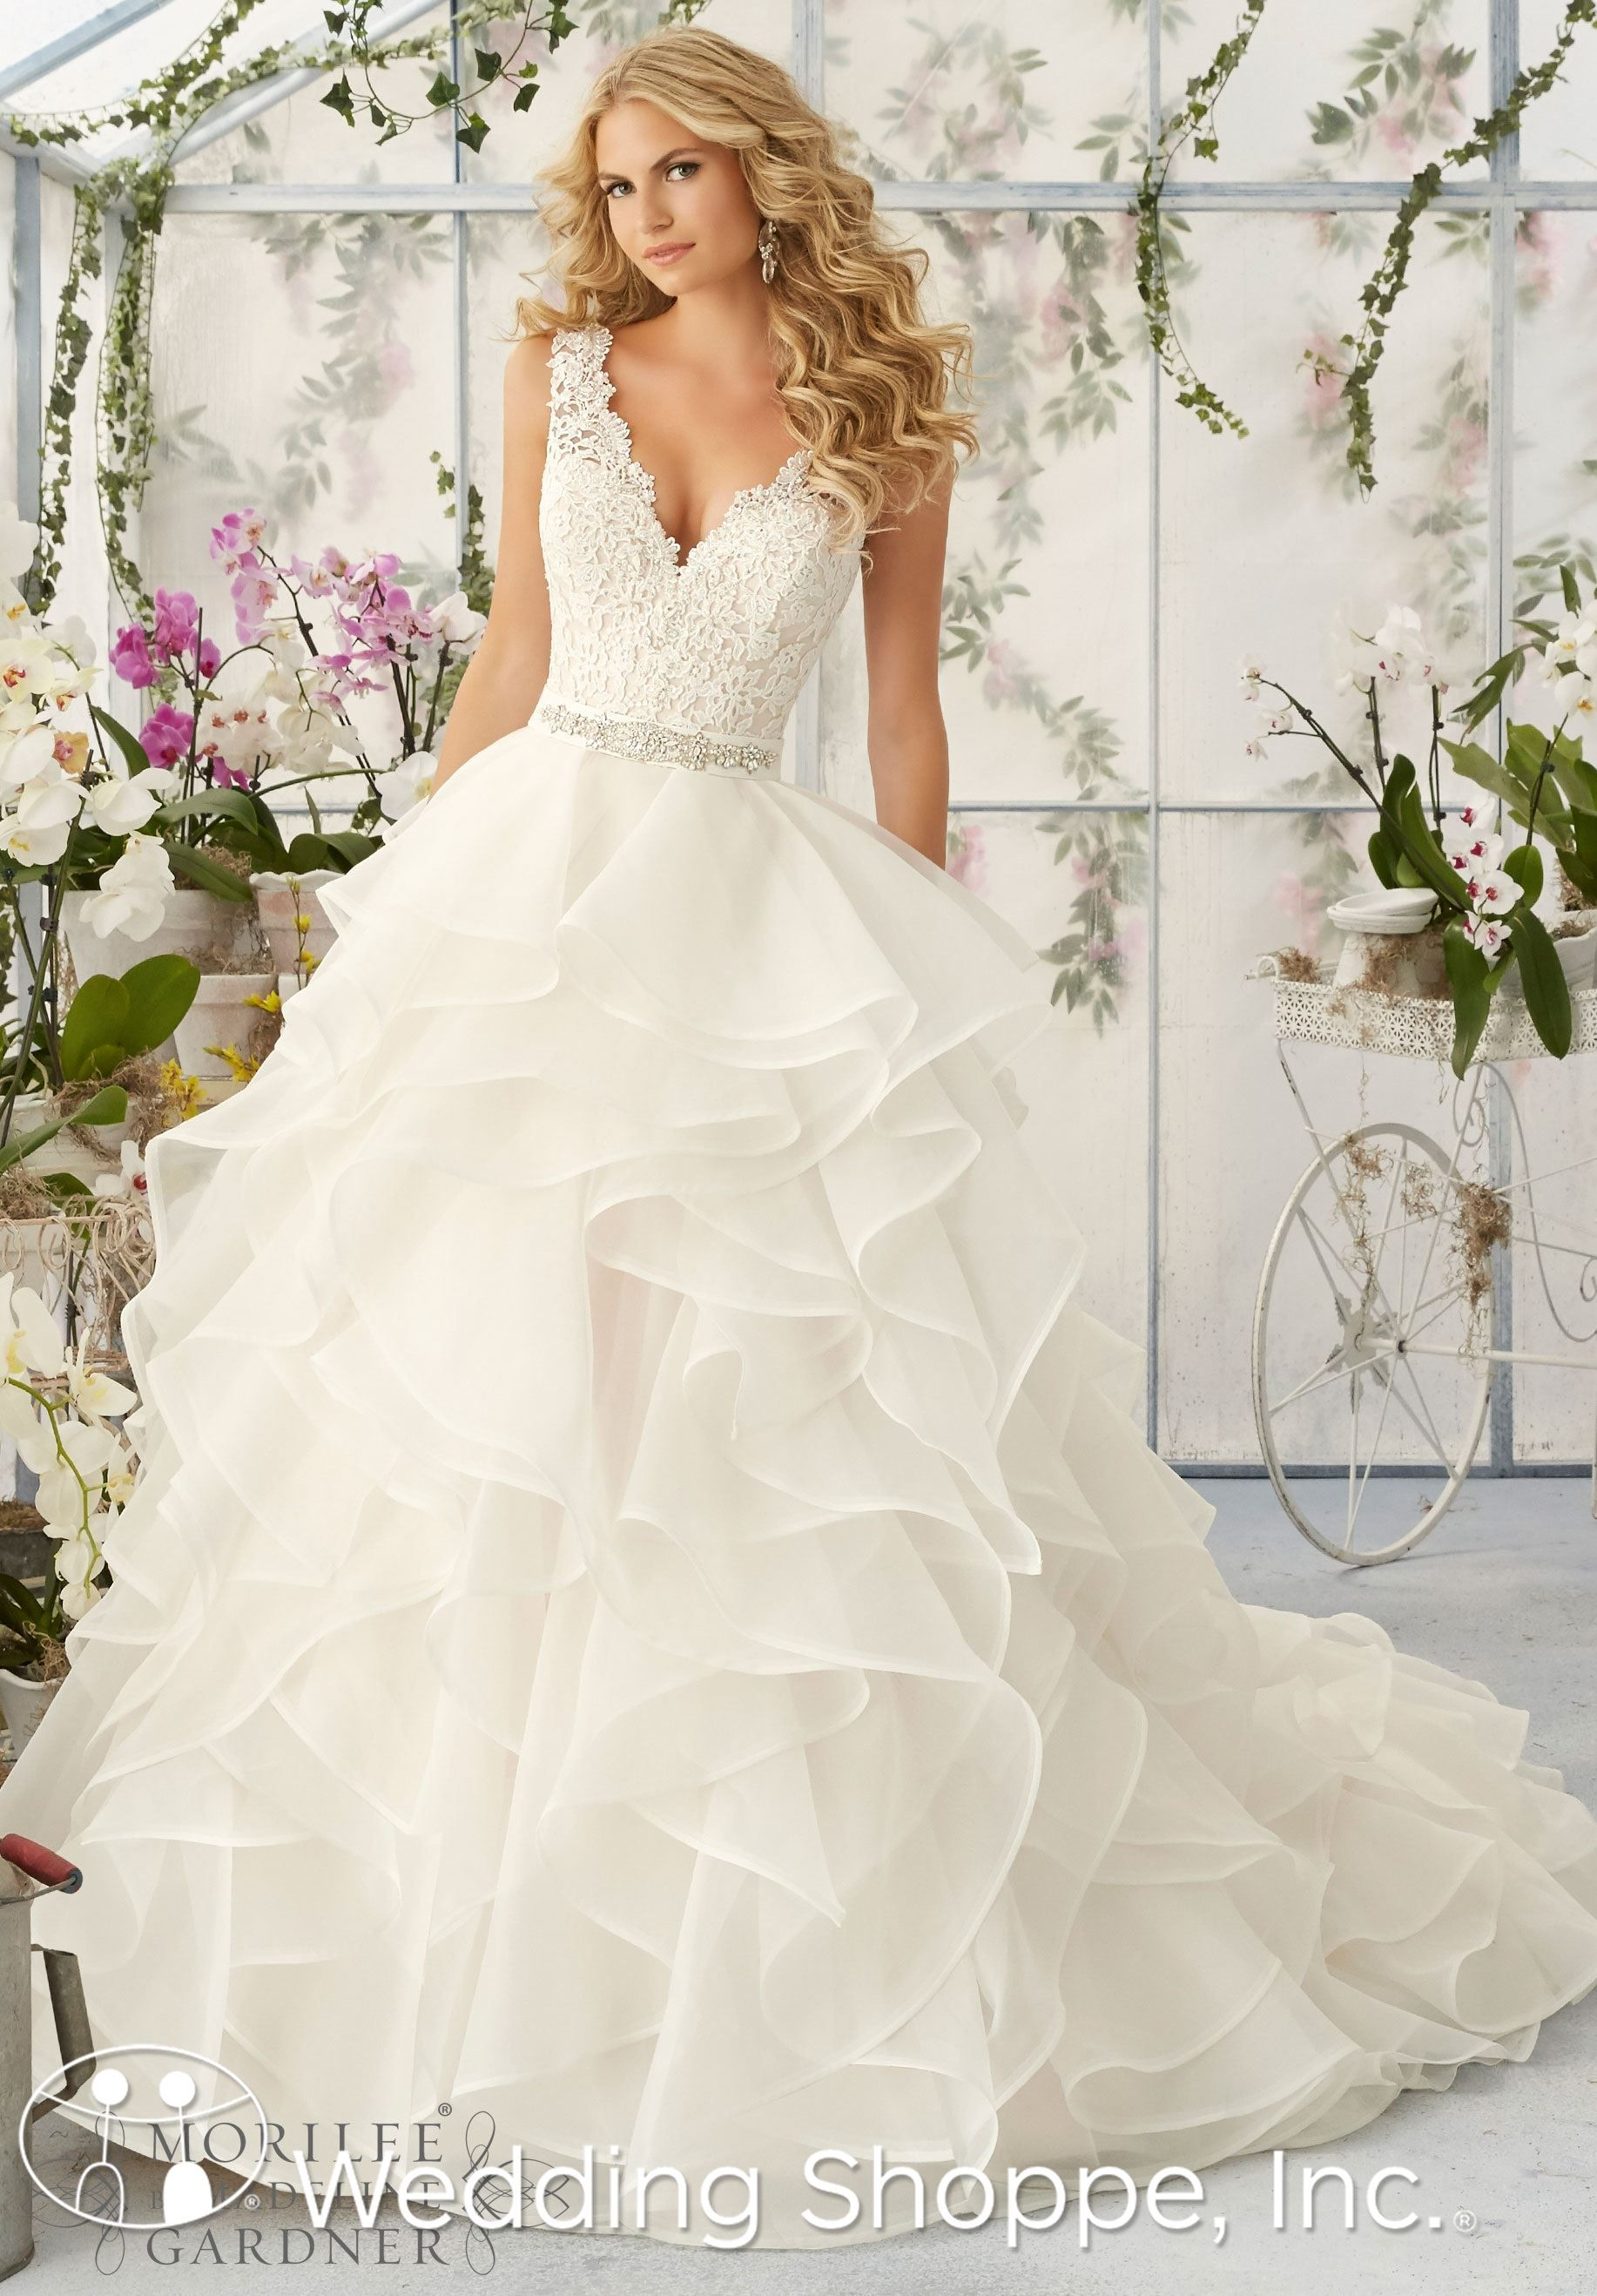 Mori Lee 2805 A Lace V Neck Wedding Dress With Ruffled Skirt